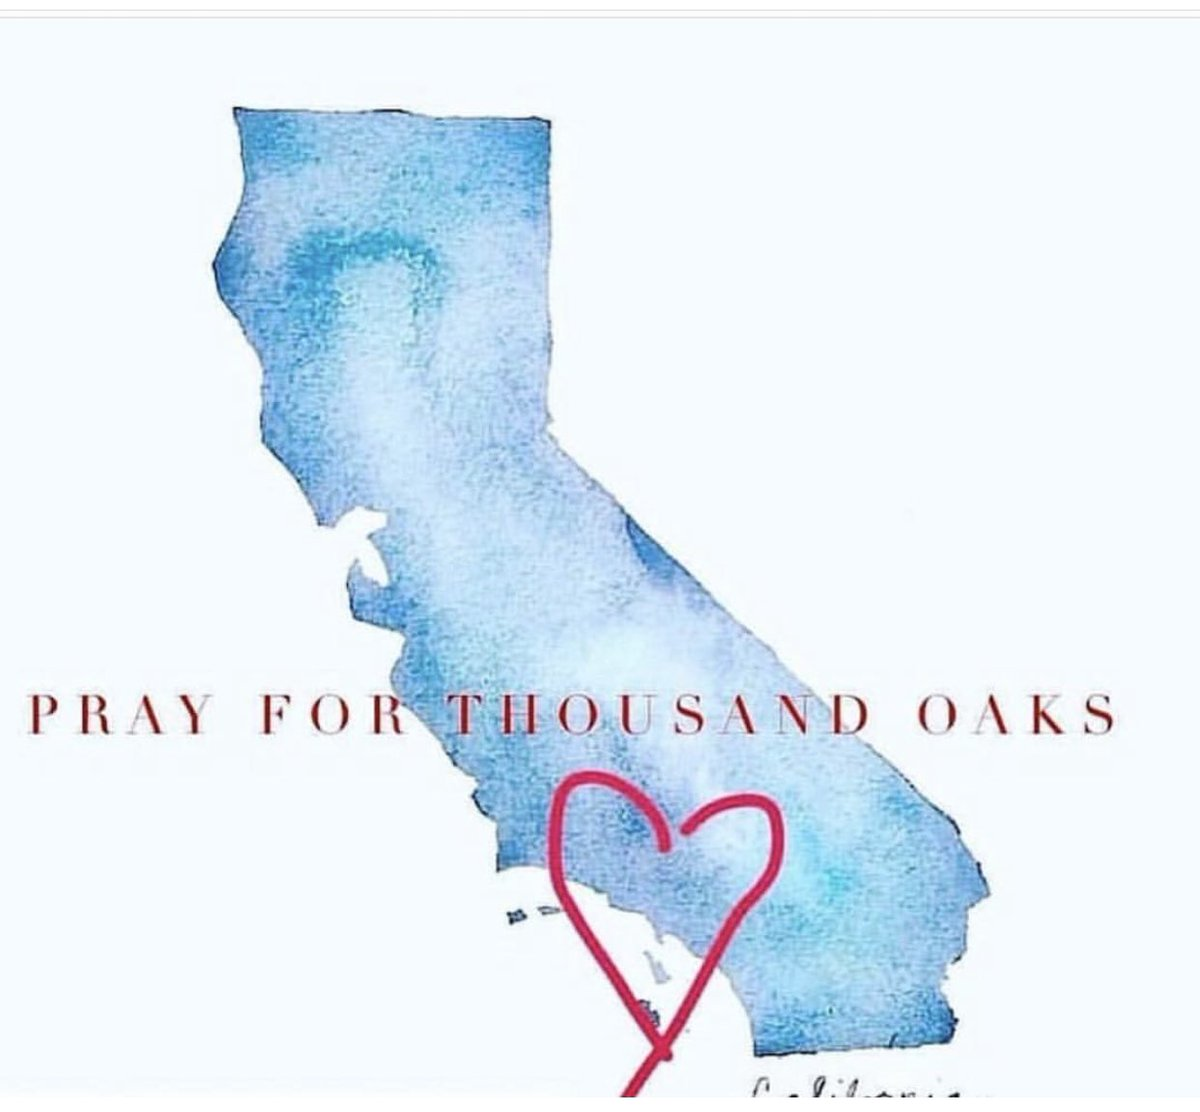 So heartbroken for the families and friends of these victims. 💔💔 #ThousandOaks #BorderlineBarShooting